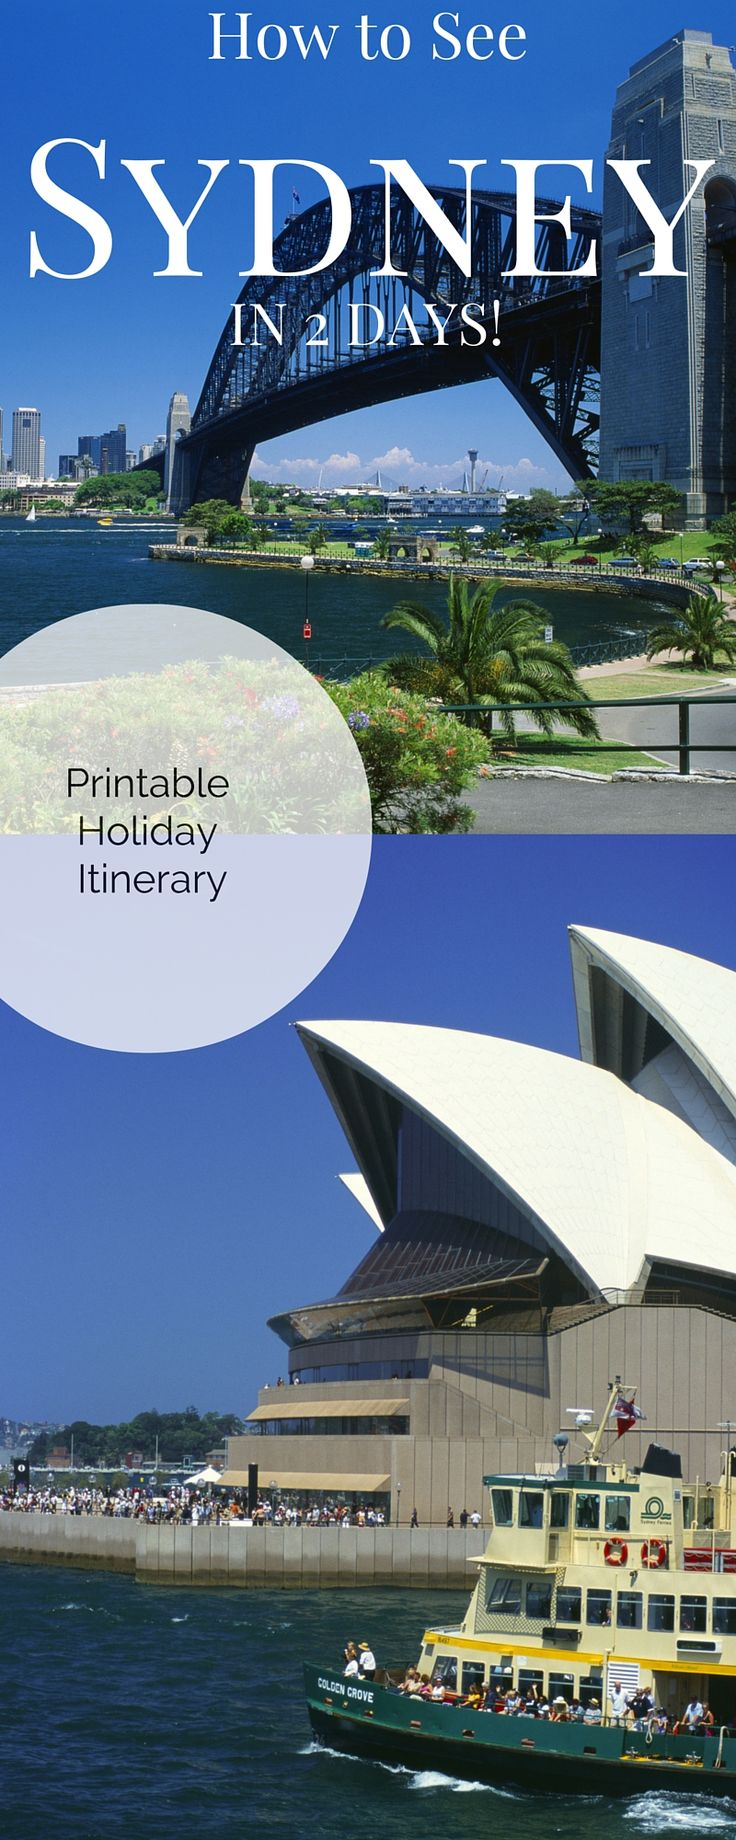 14 Sydney Tourist Attractions and Famous Icons in just 2 DAY! Printable itinerary for a jam packed Sydney Getaway.